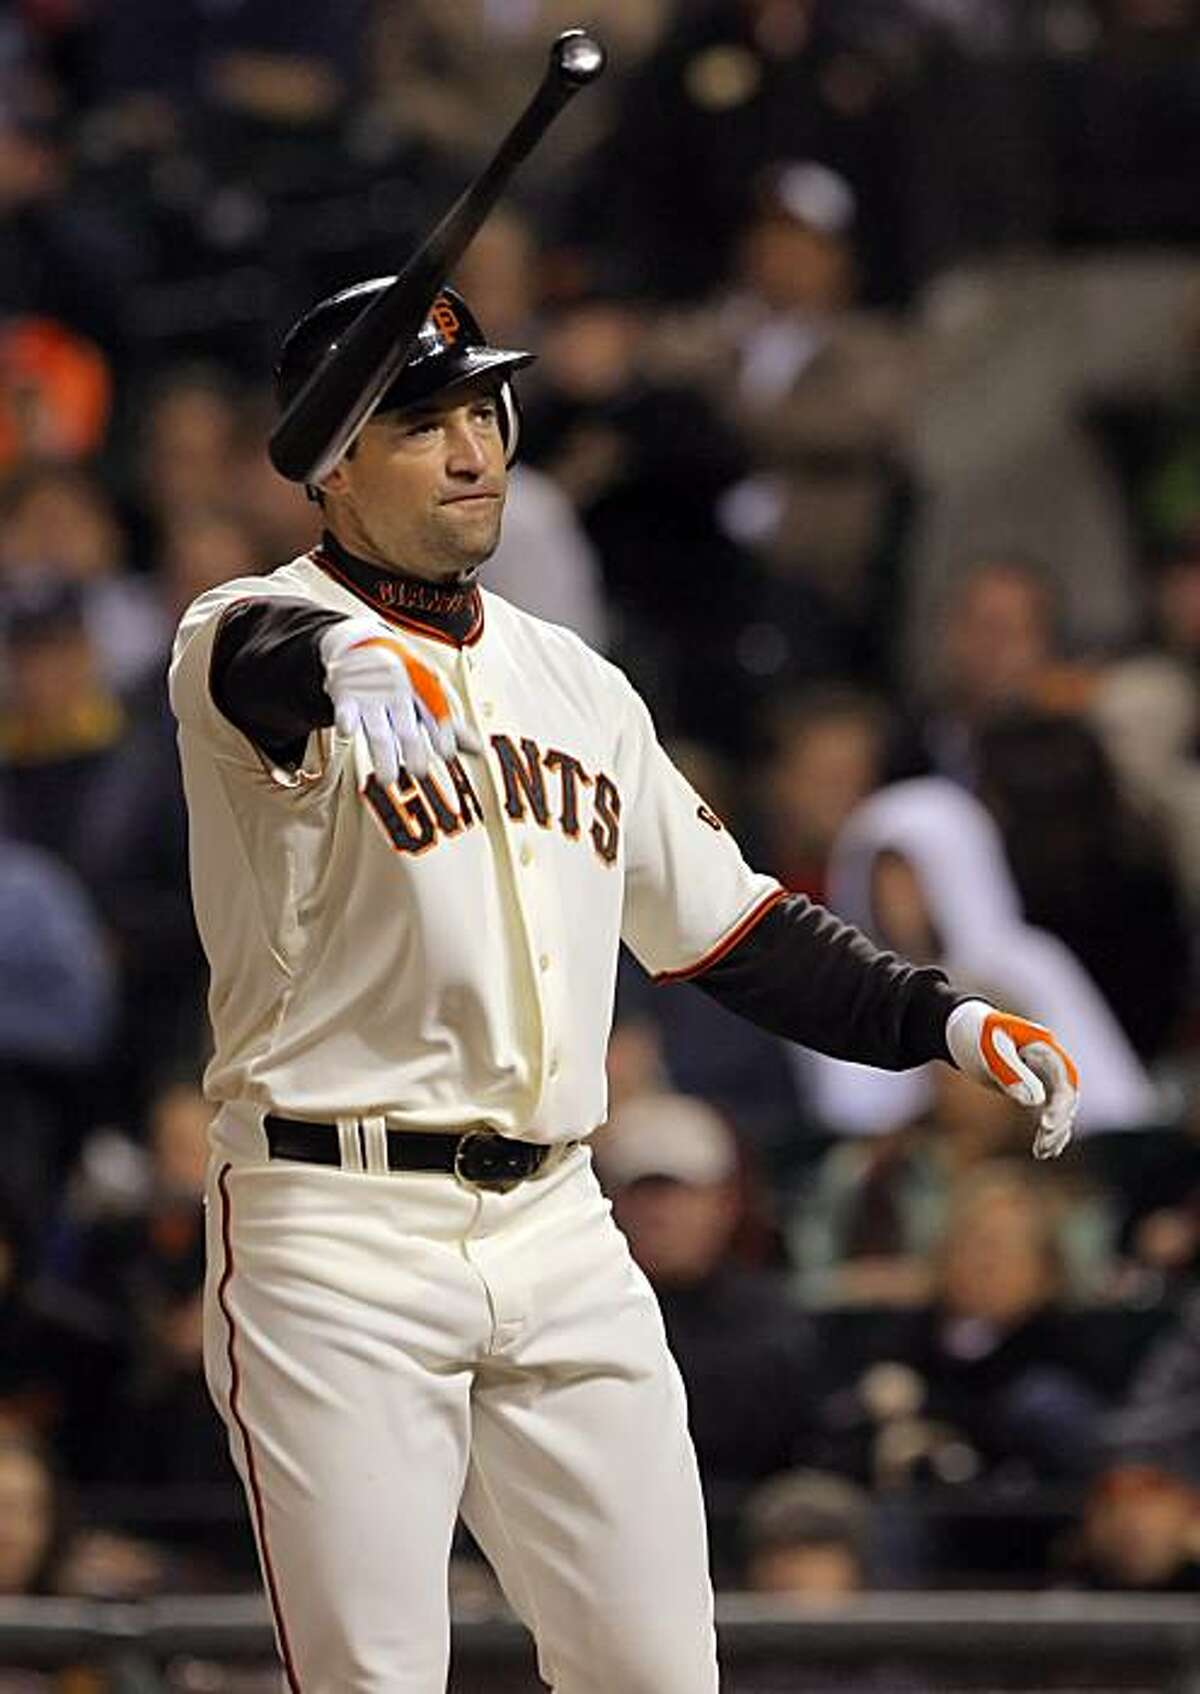 Pat Burrell throws his bat after striking out in the seventh inning Tuesday at AT&T Park.